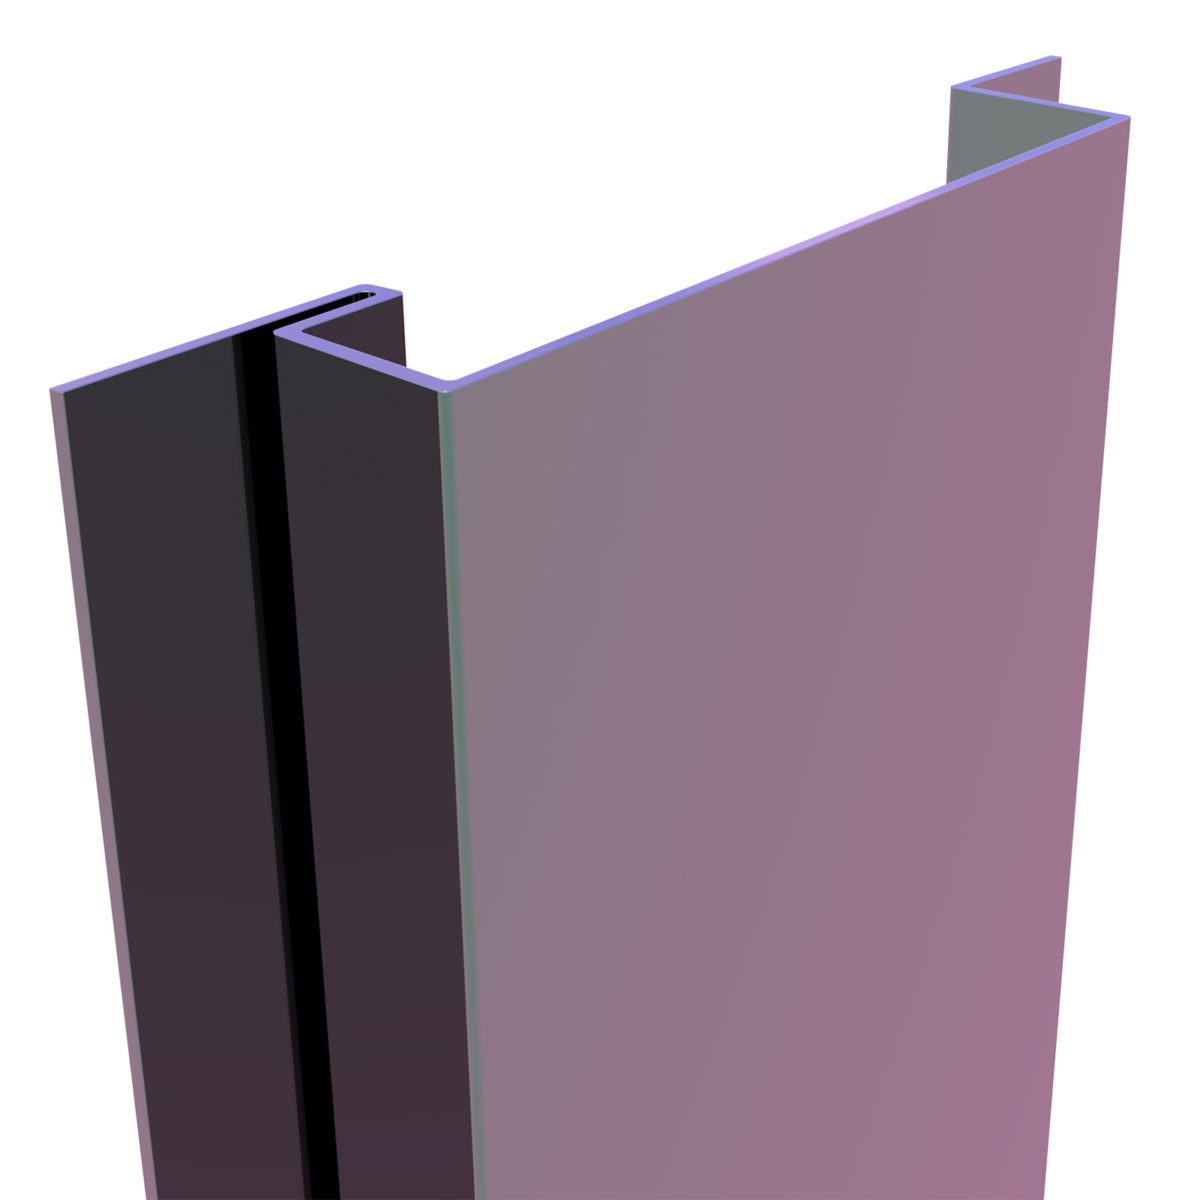 3D Substructure of our IPC Rainscreen Cladding System